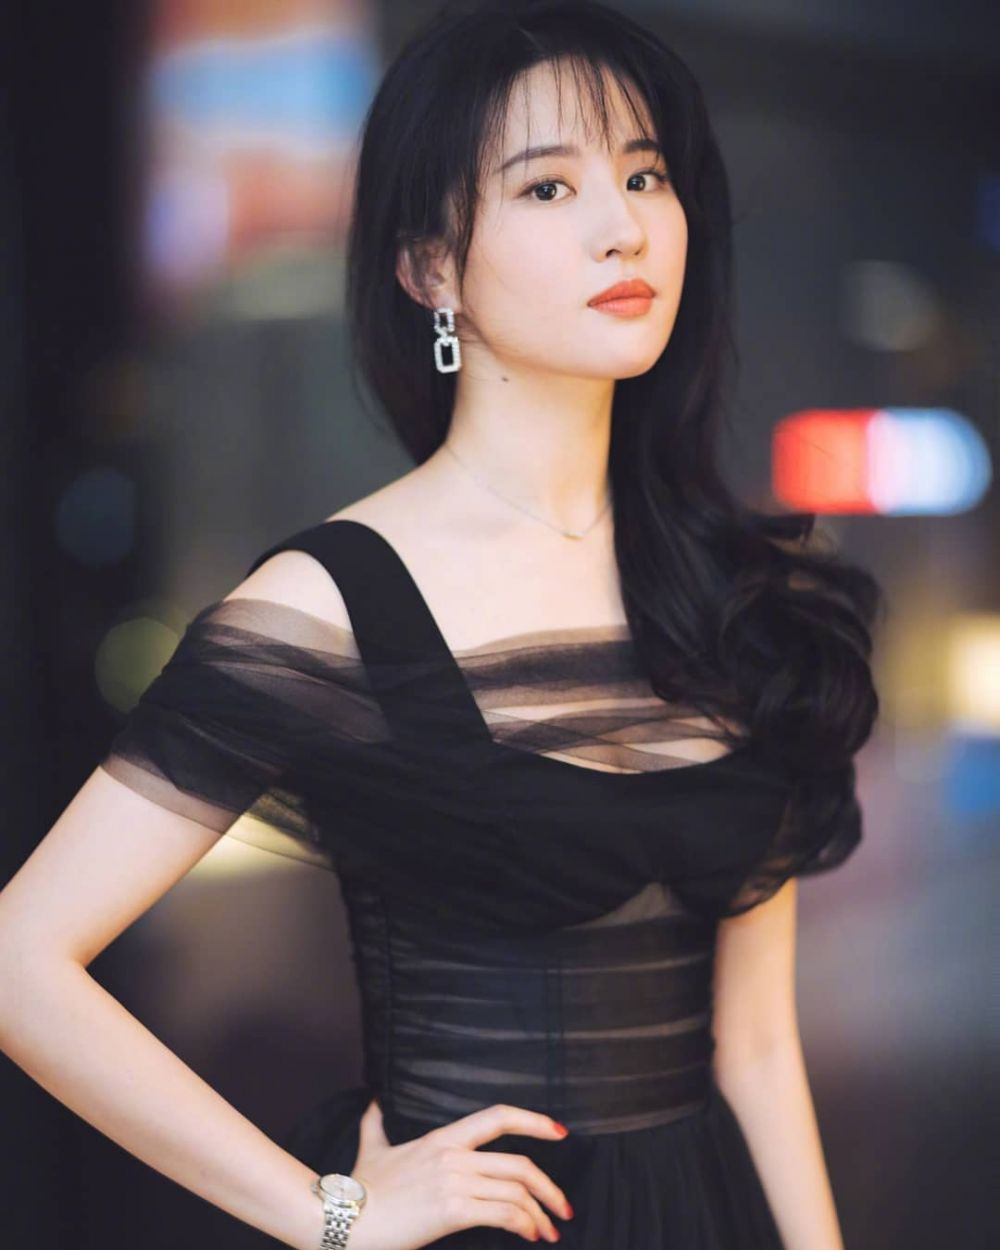 liu yifei as mulan  © 2019 brilio.net